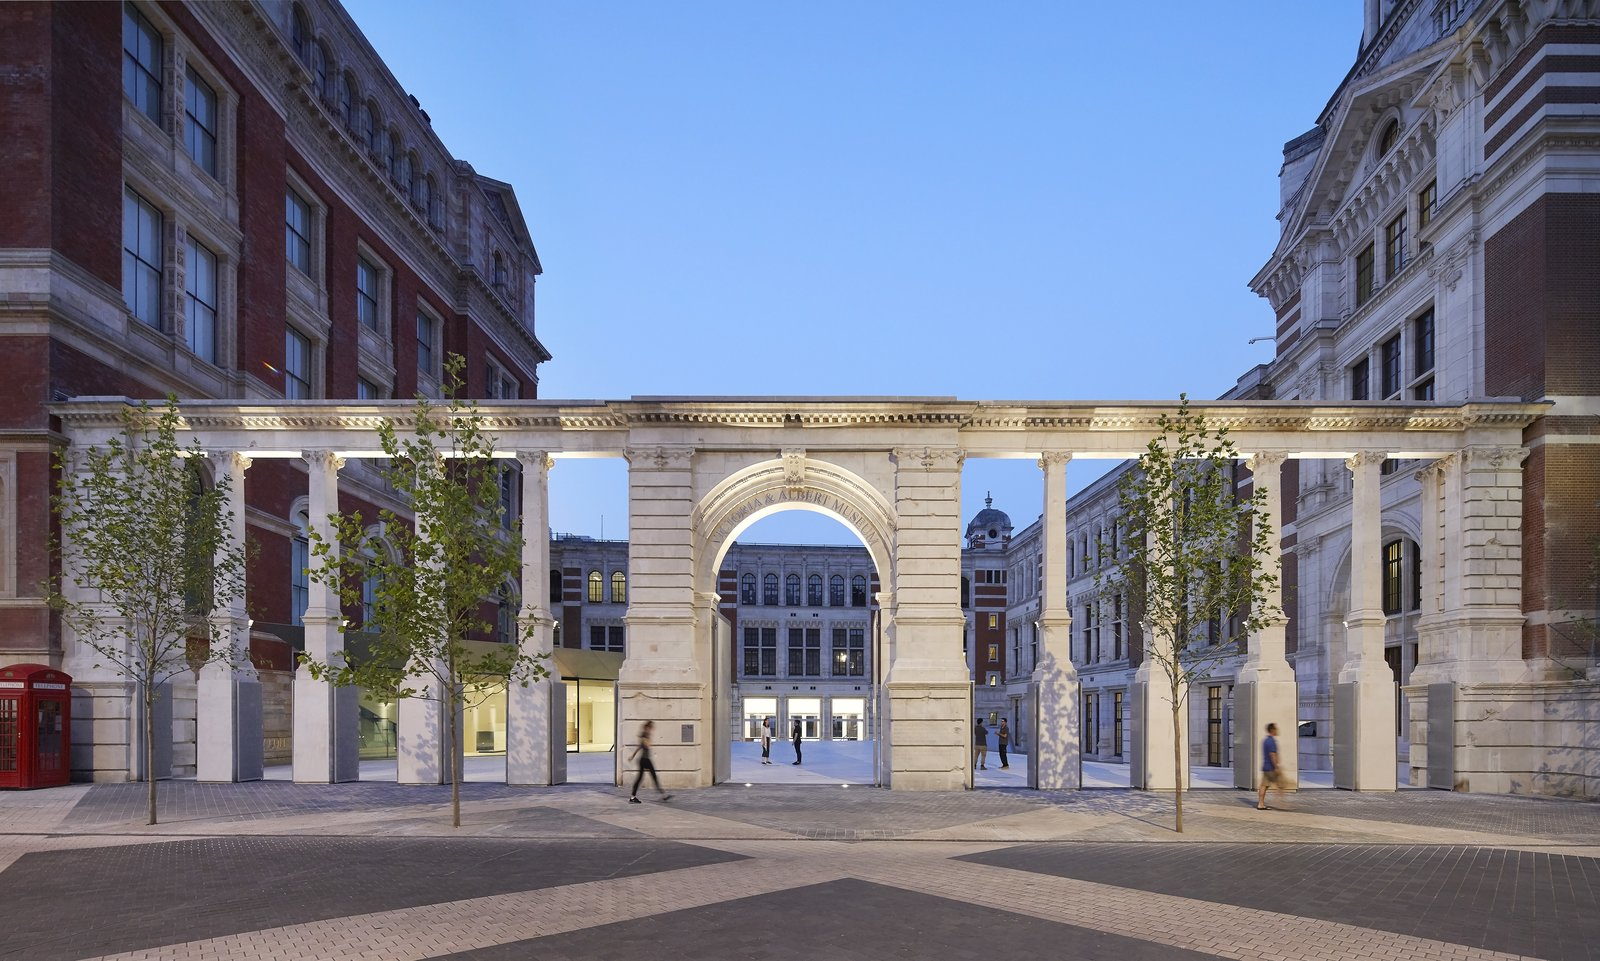 Photo 10 of 10 in Part of an Epic Expansion, London's V&A Museum Paves its Courtyard With 11,000 Porcelain Tiles